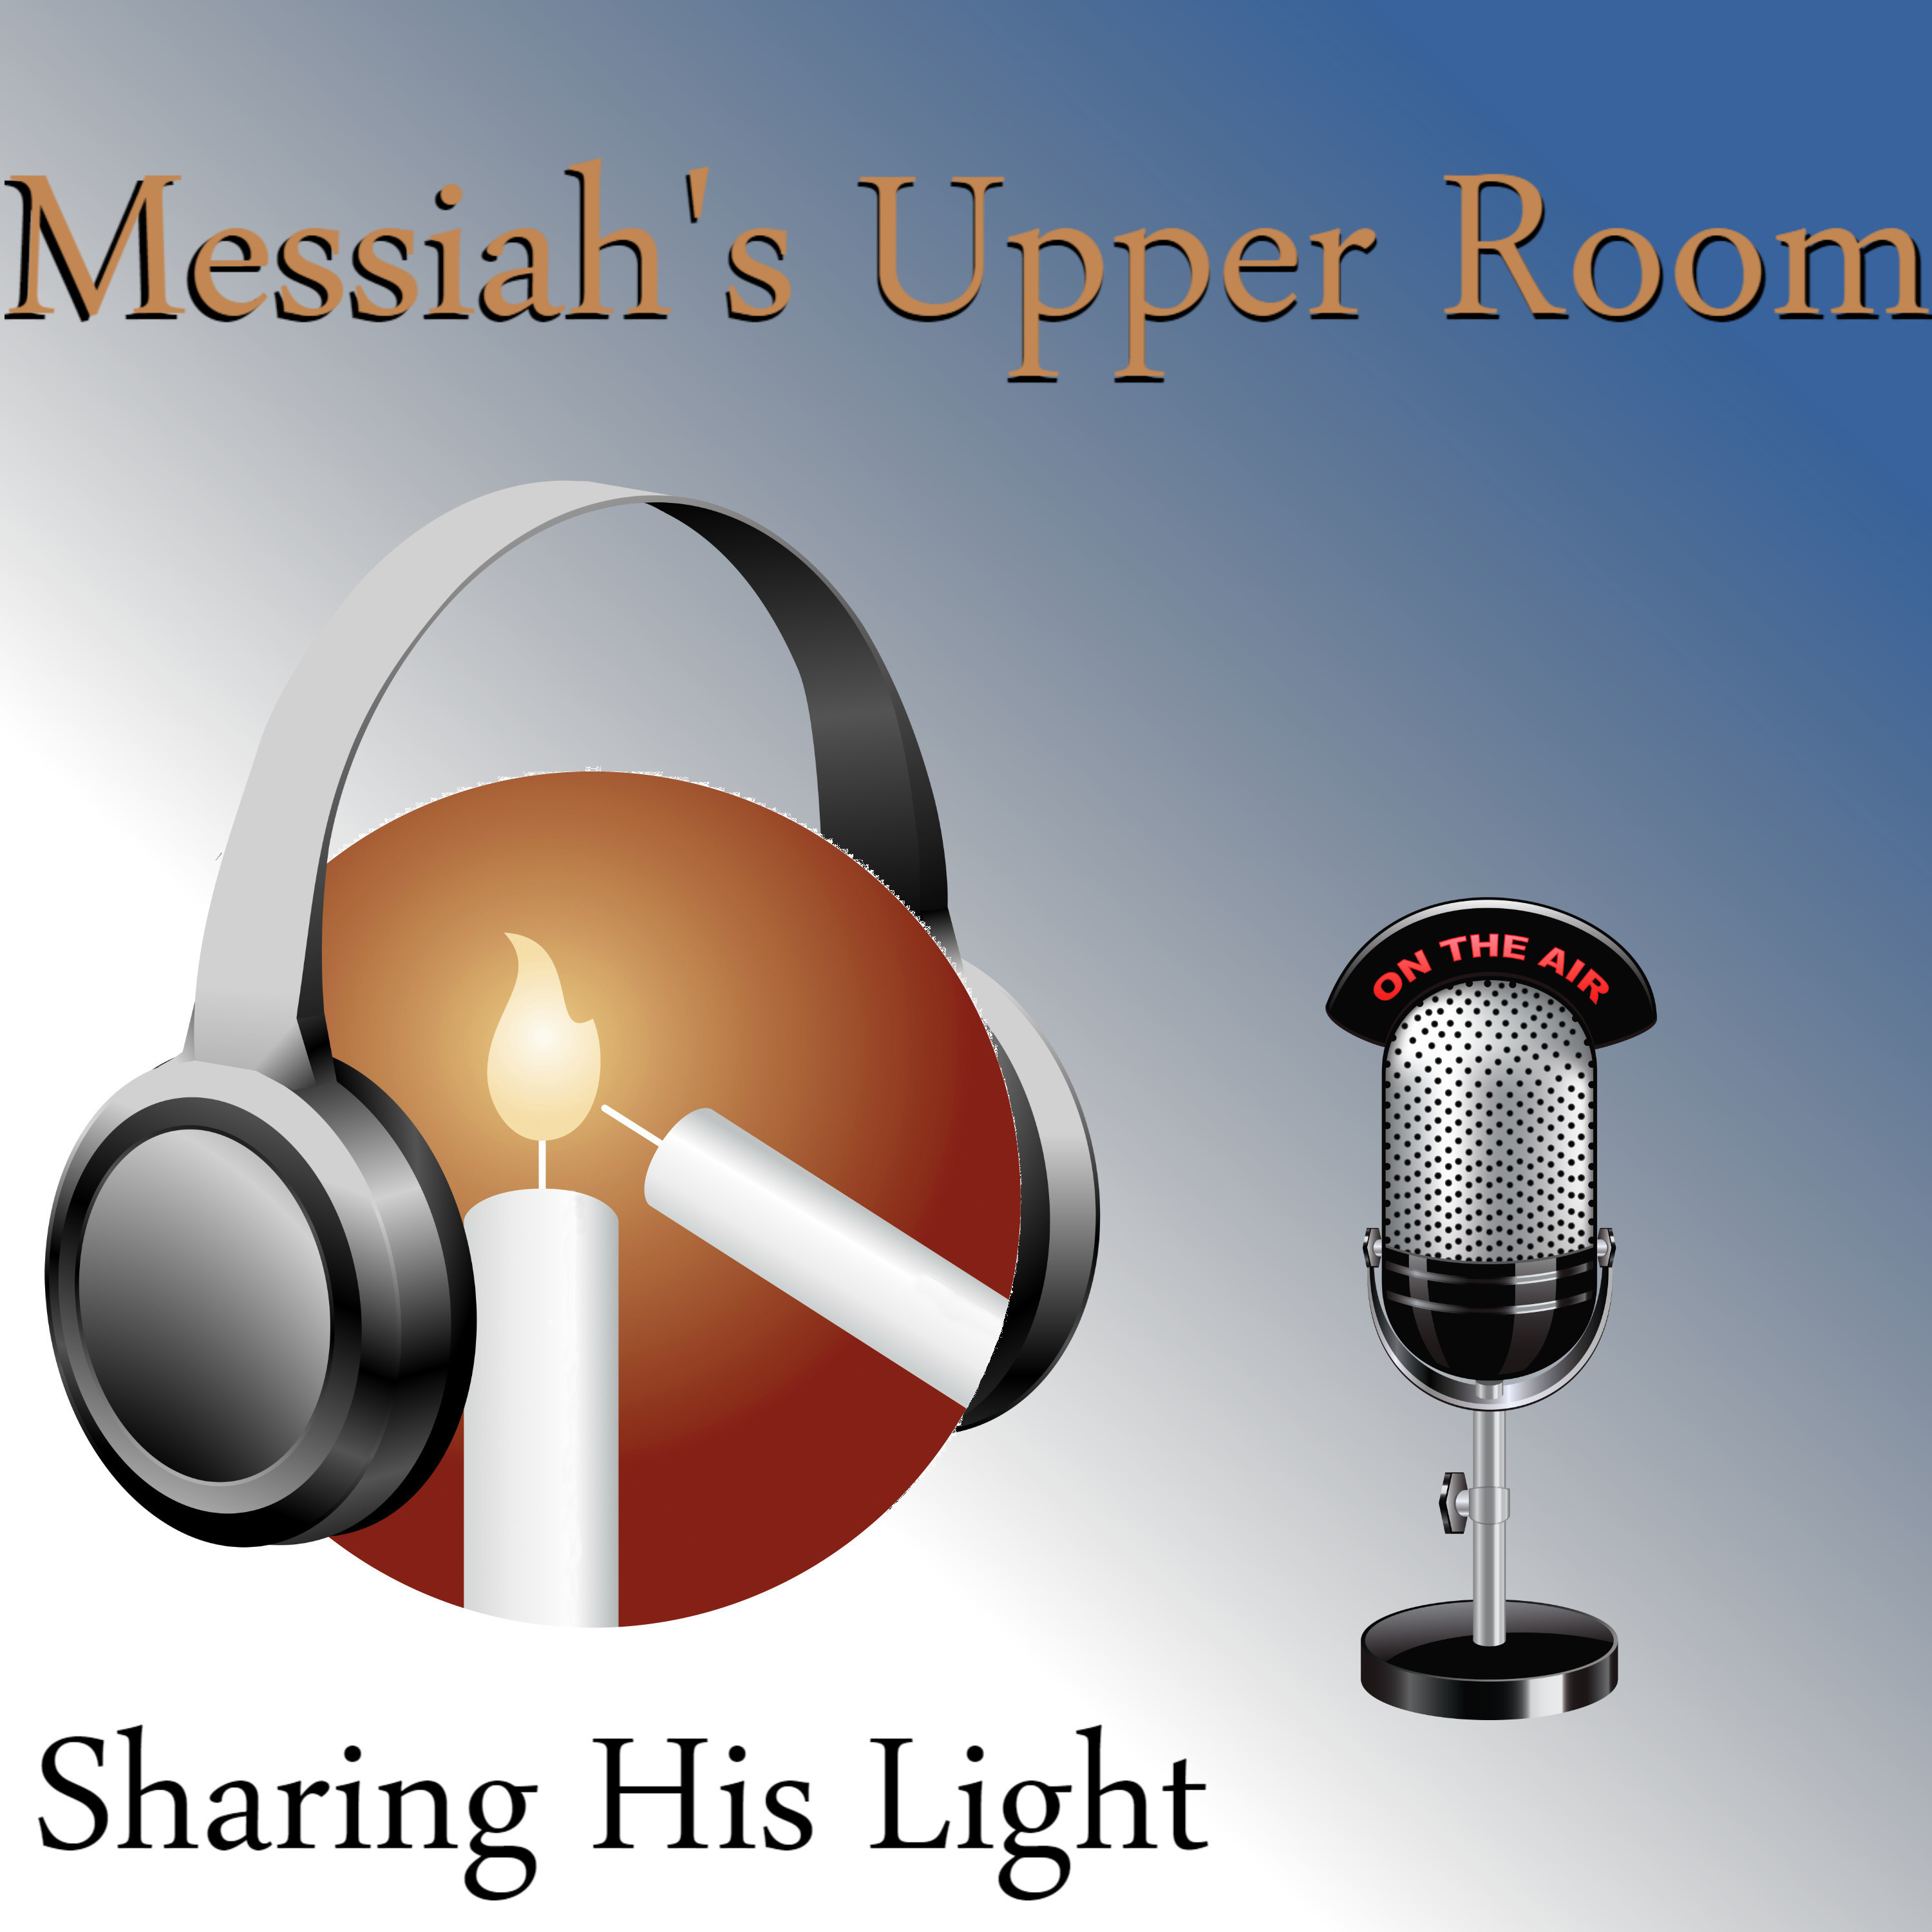 MURP 0041: Anger And The Commandment